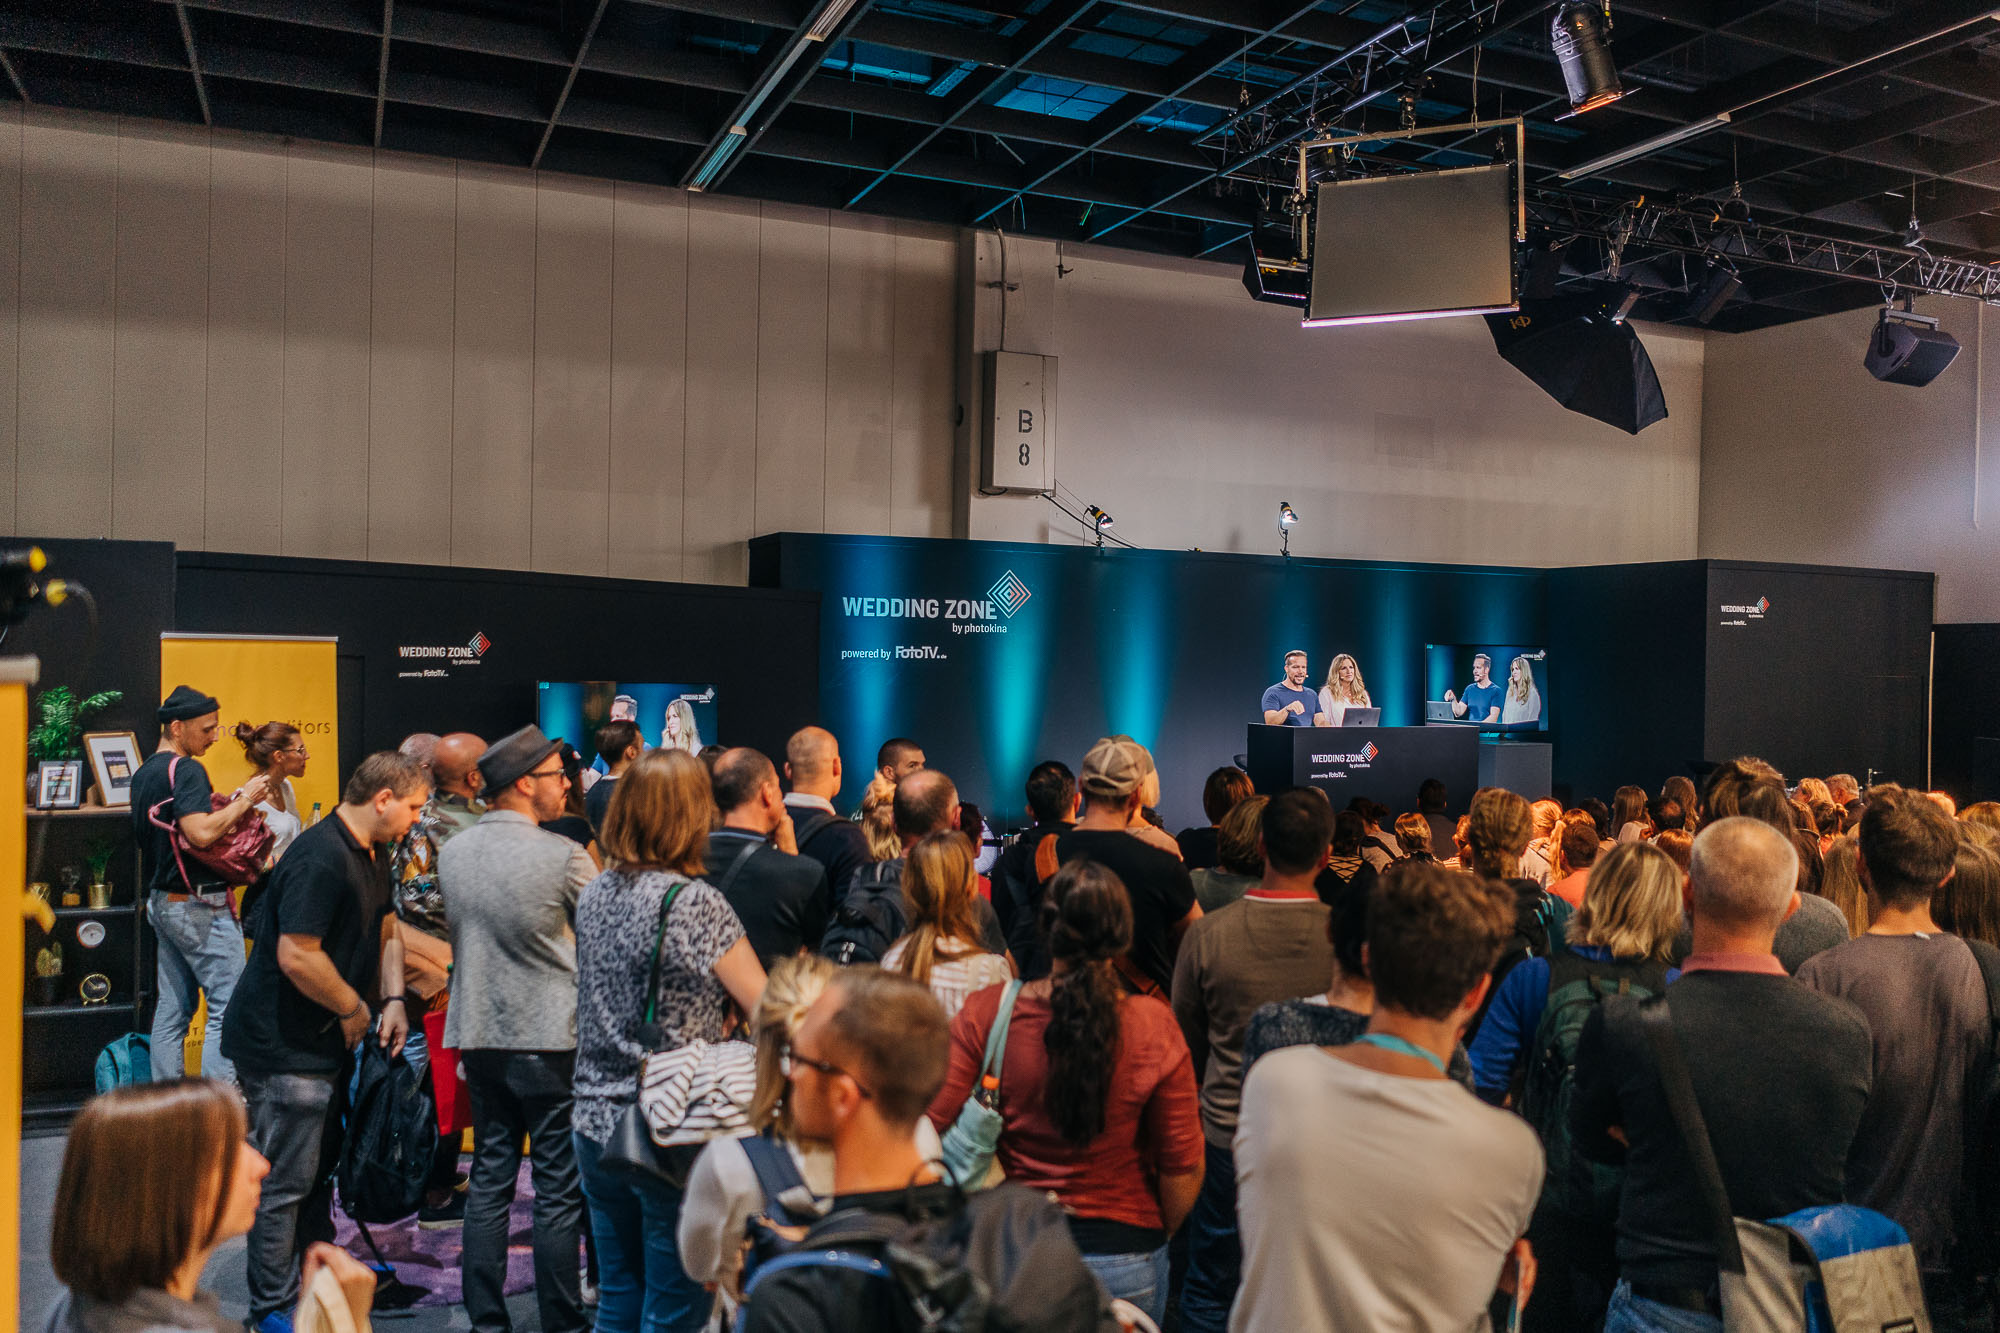 photokina and Wedding Zone 2018 in Cologne - Image 1 - stage